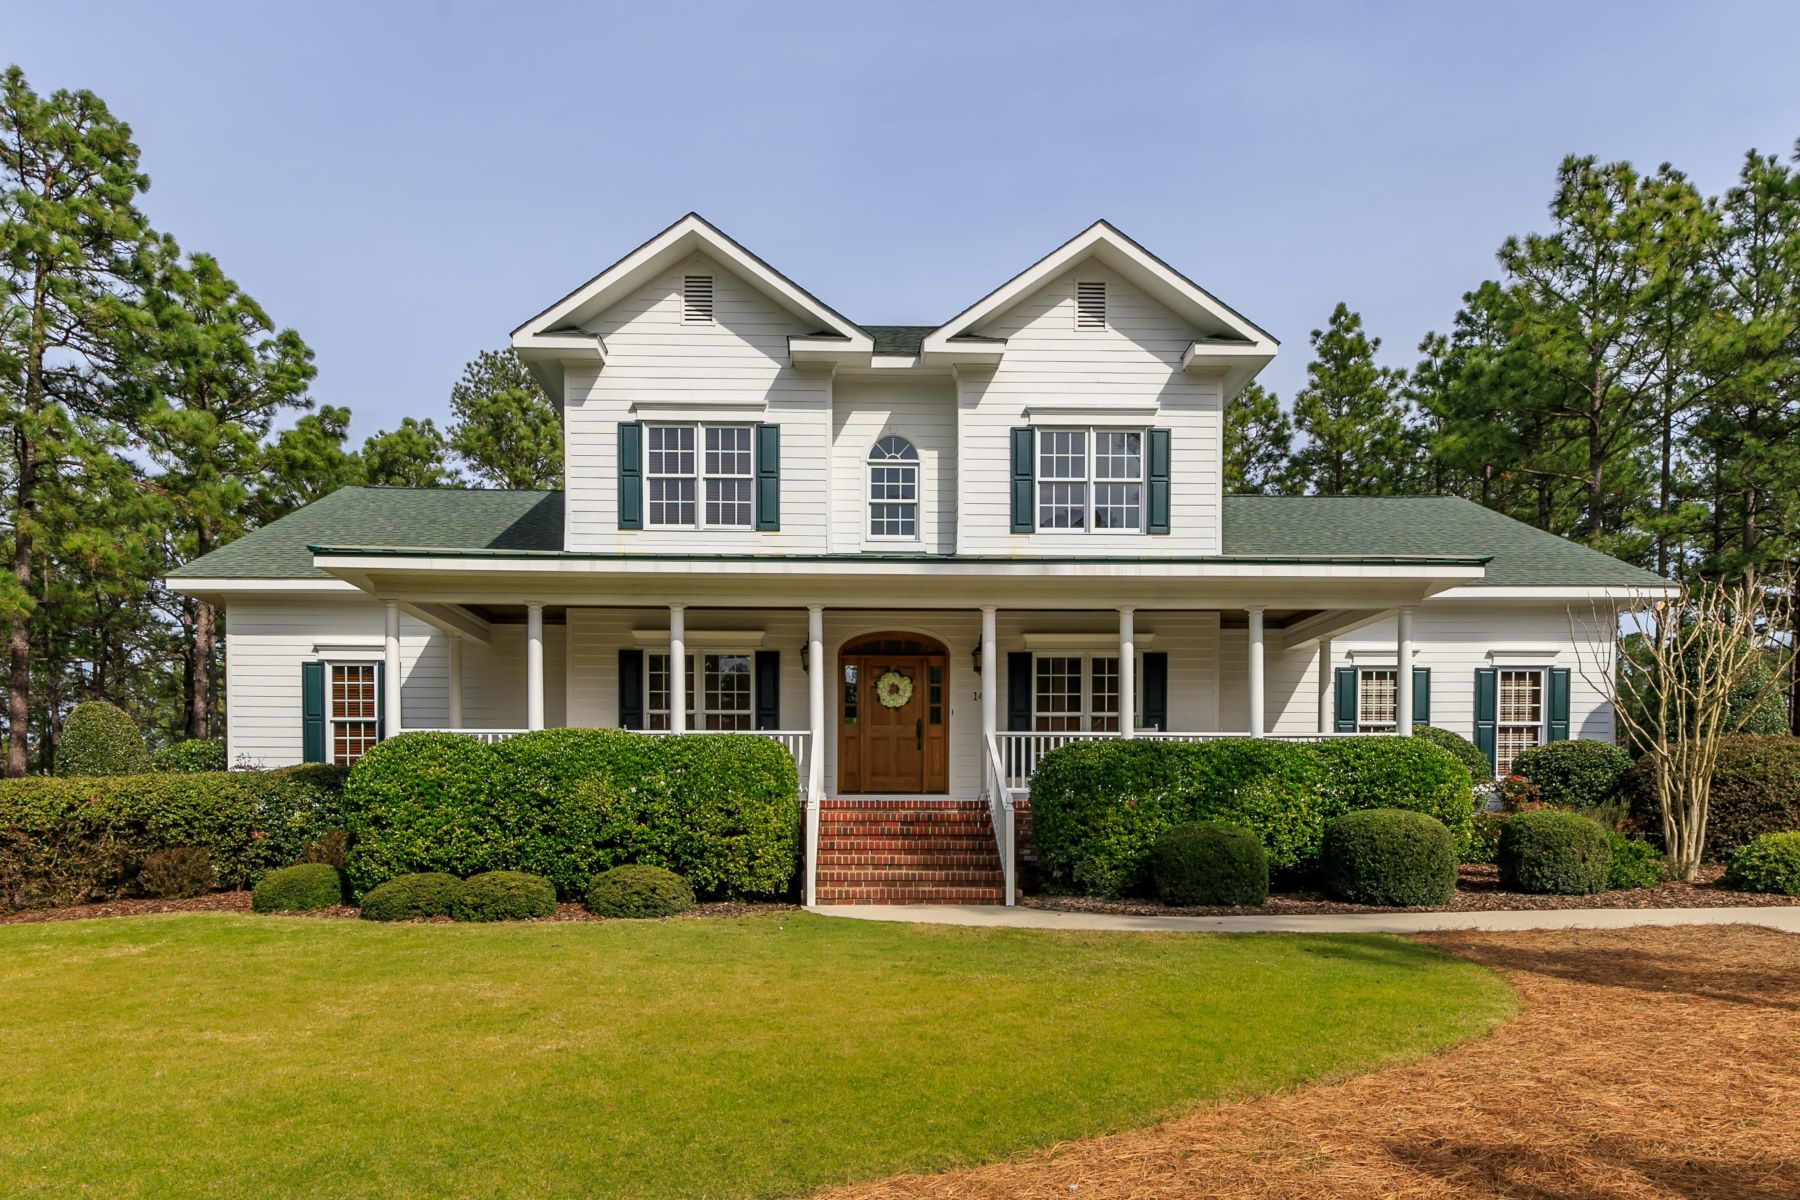 Single Family Homes for Active at 14 Middlebury Rd. 14 Middlebury Rd Pinehurst, North Carolina 28374 United States